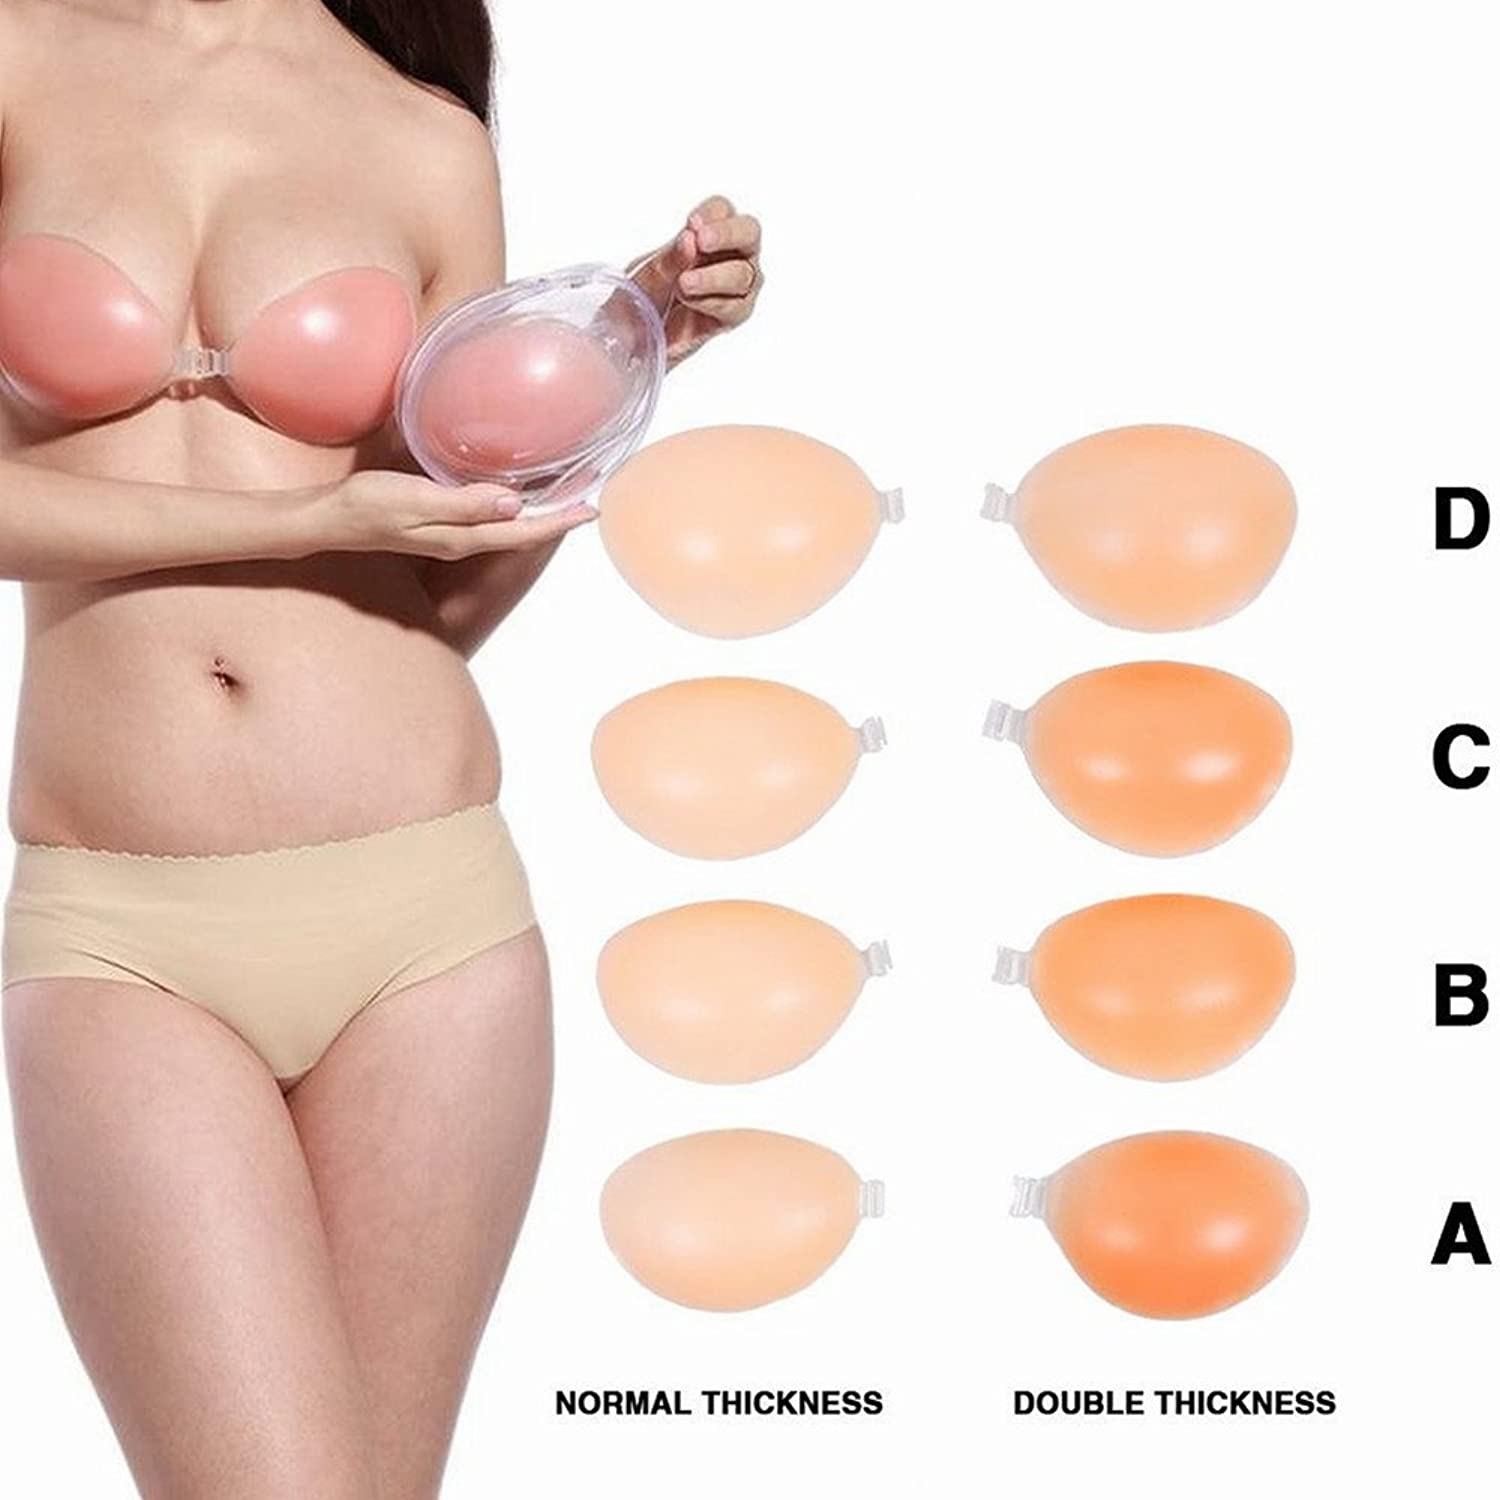 8b44465630993 Details about Sexy Invisible Push-Up Silicon Bra Strapless Self Adhesive  Backless Bra